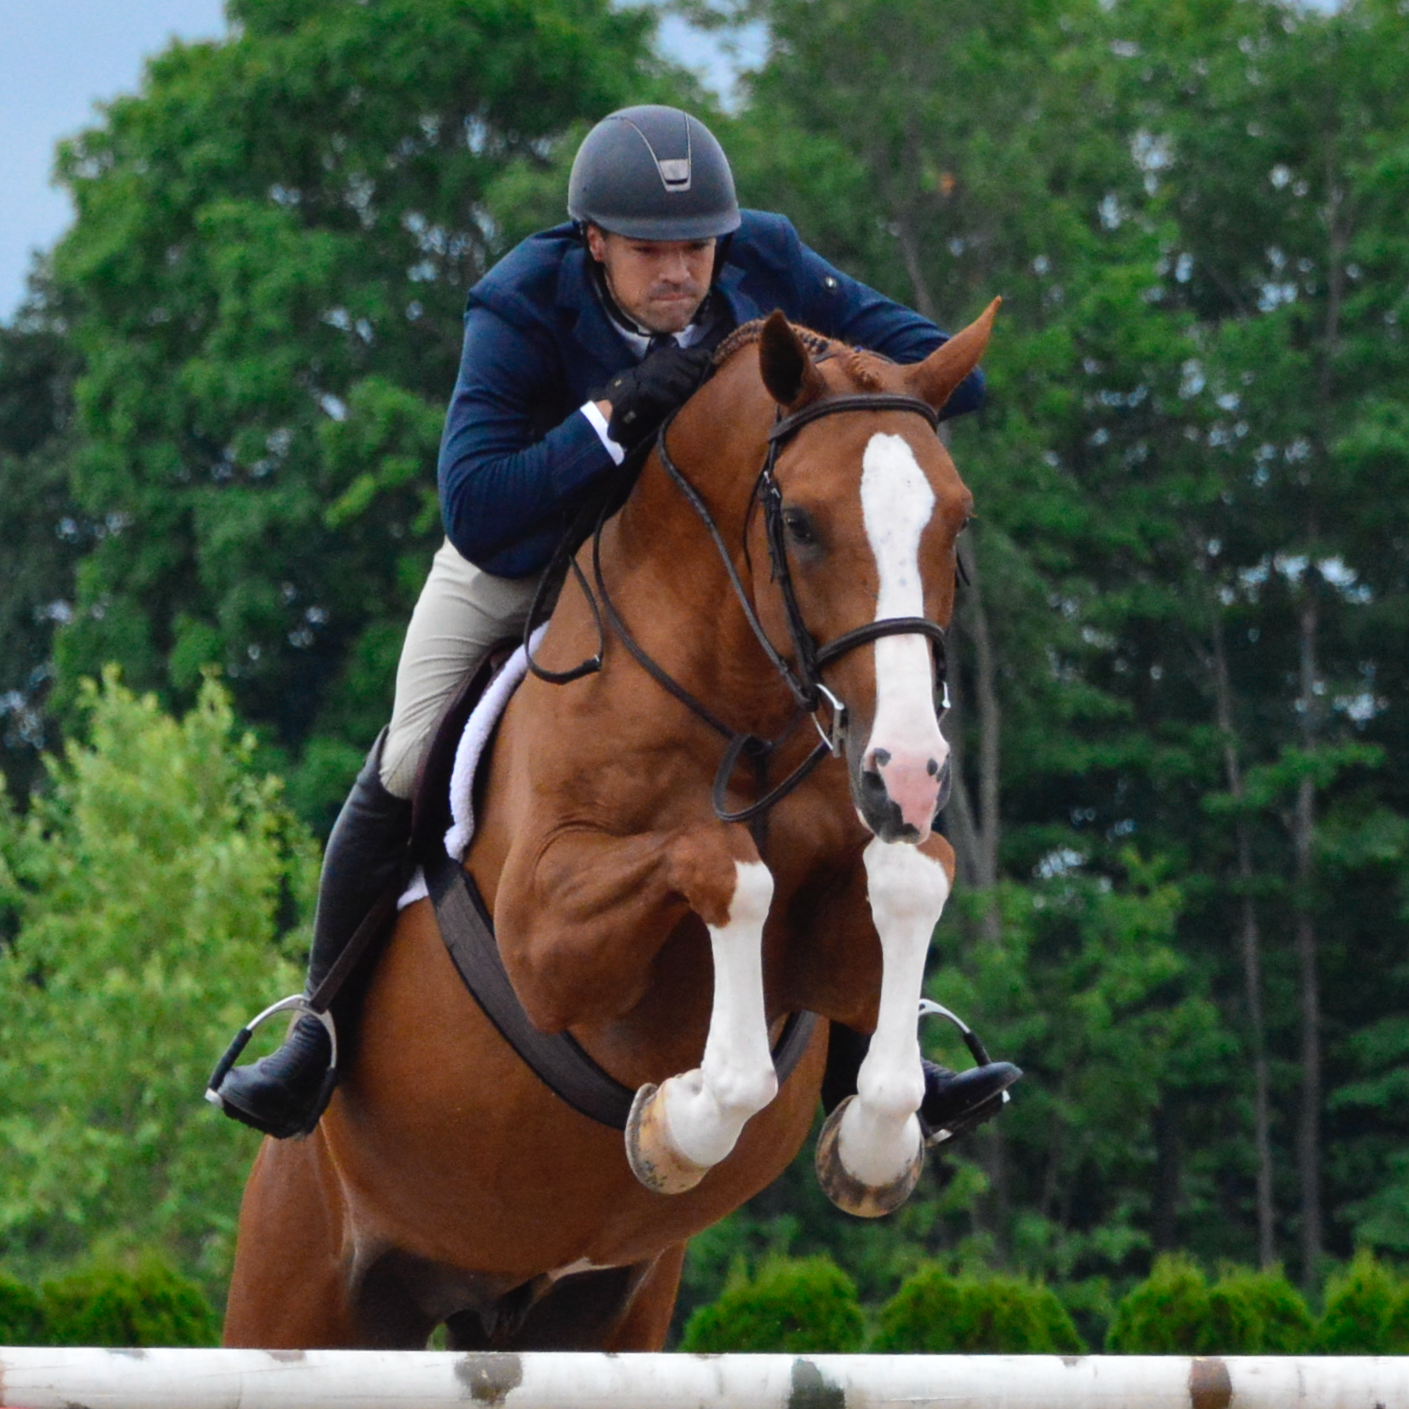 Terra-Plush-Fleece-Fancy-Stitch-Natural-Coiled-600x600 Greener Pastures Ahead with Oaklyn's Ecofriendly Girths Horse Racing / Equestrian [your]NEWS